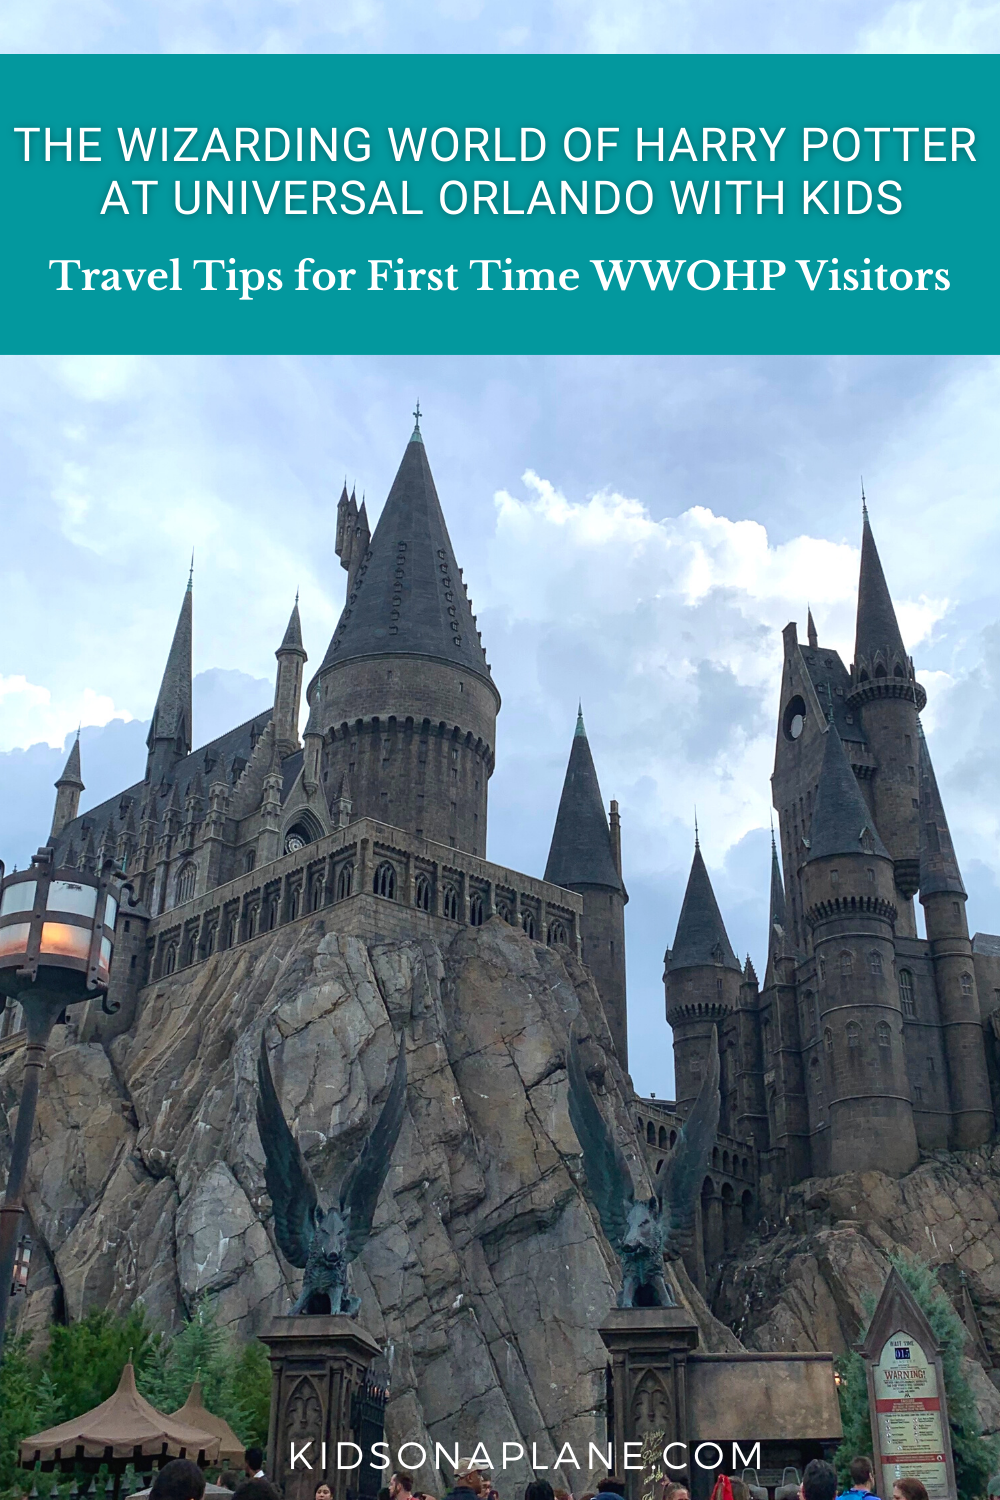 First Time Visitor Travel Tips at Universal Orlando Resort - The Wizarding World of Harry Potter